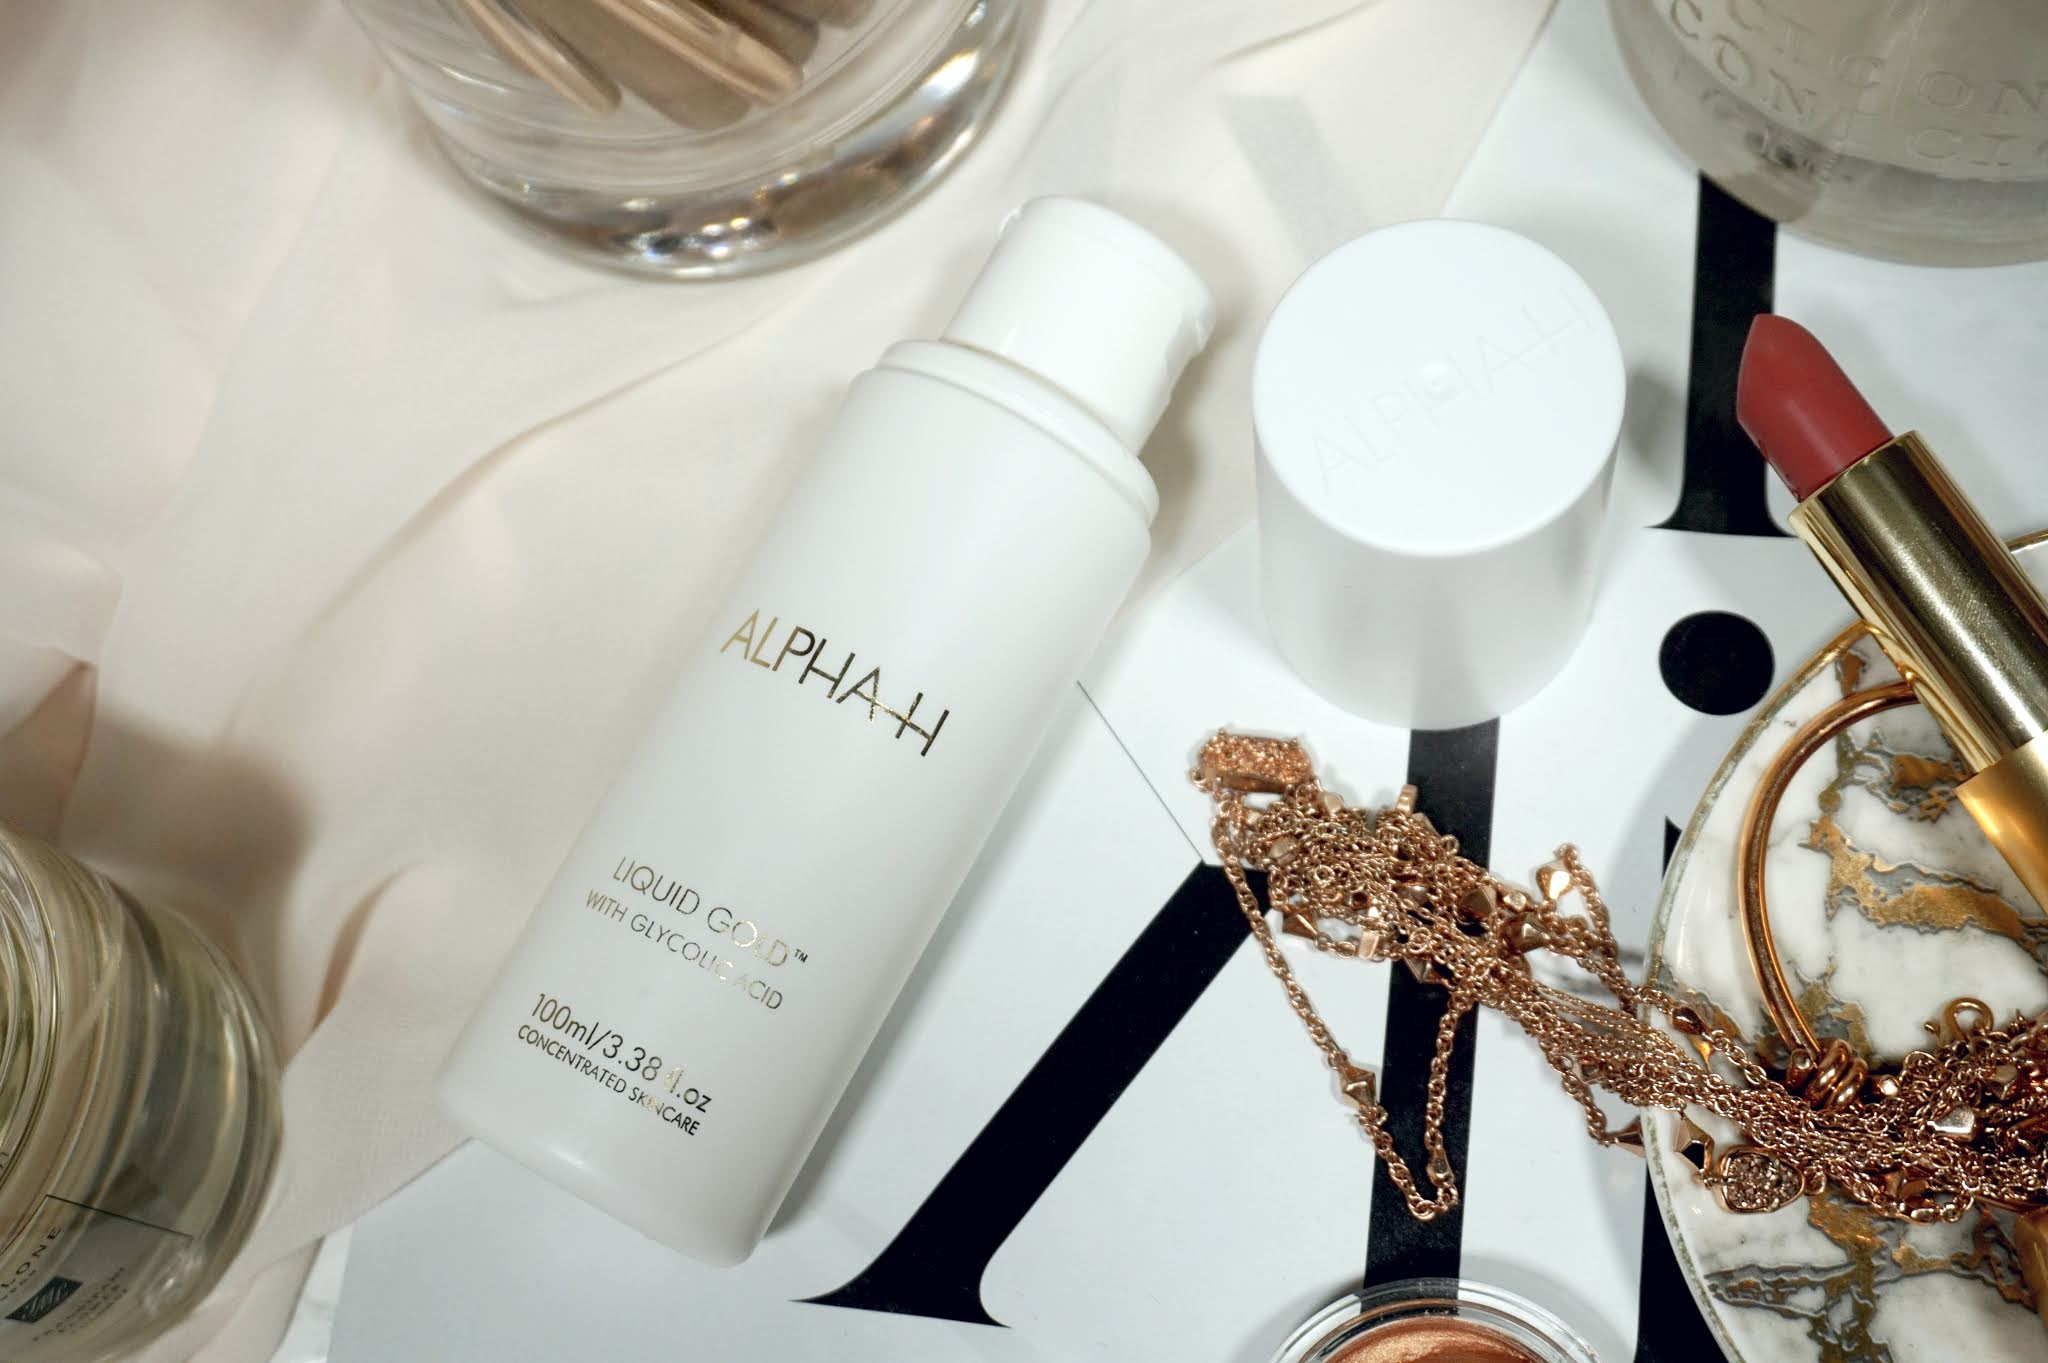 Alpha-H Liquid Gold Exfoliating Treatment with Glycolic Acid Review